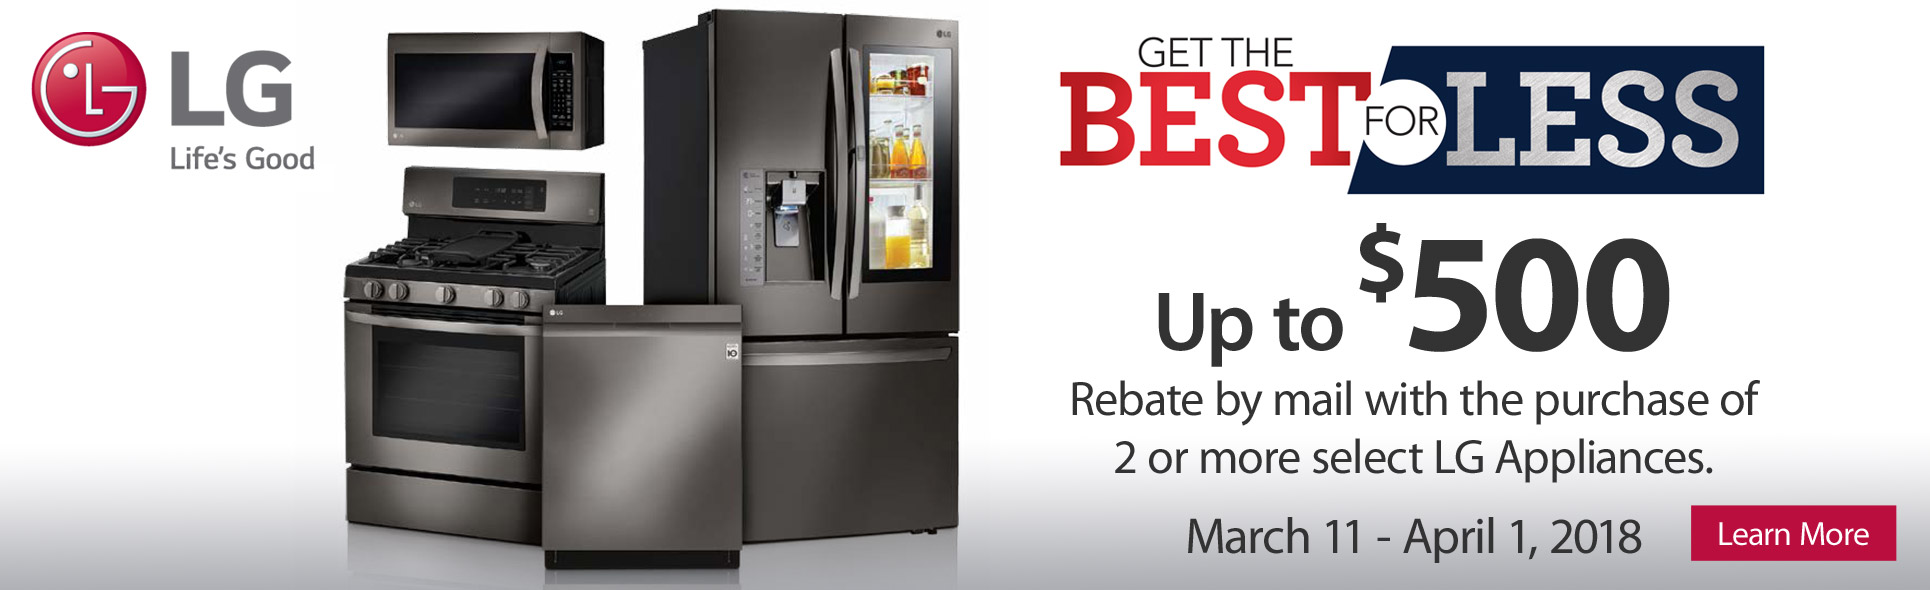 LG Appliances Best For Less- Save up to $500